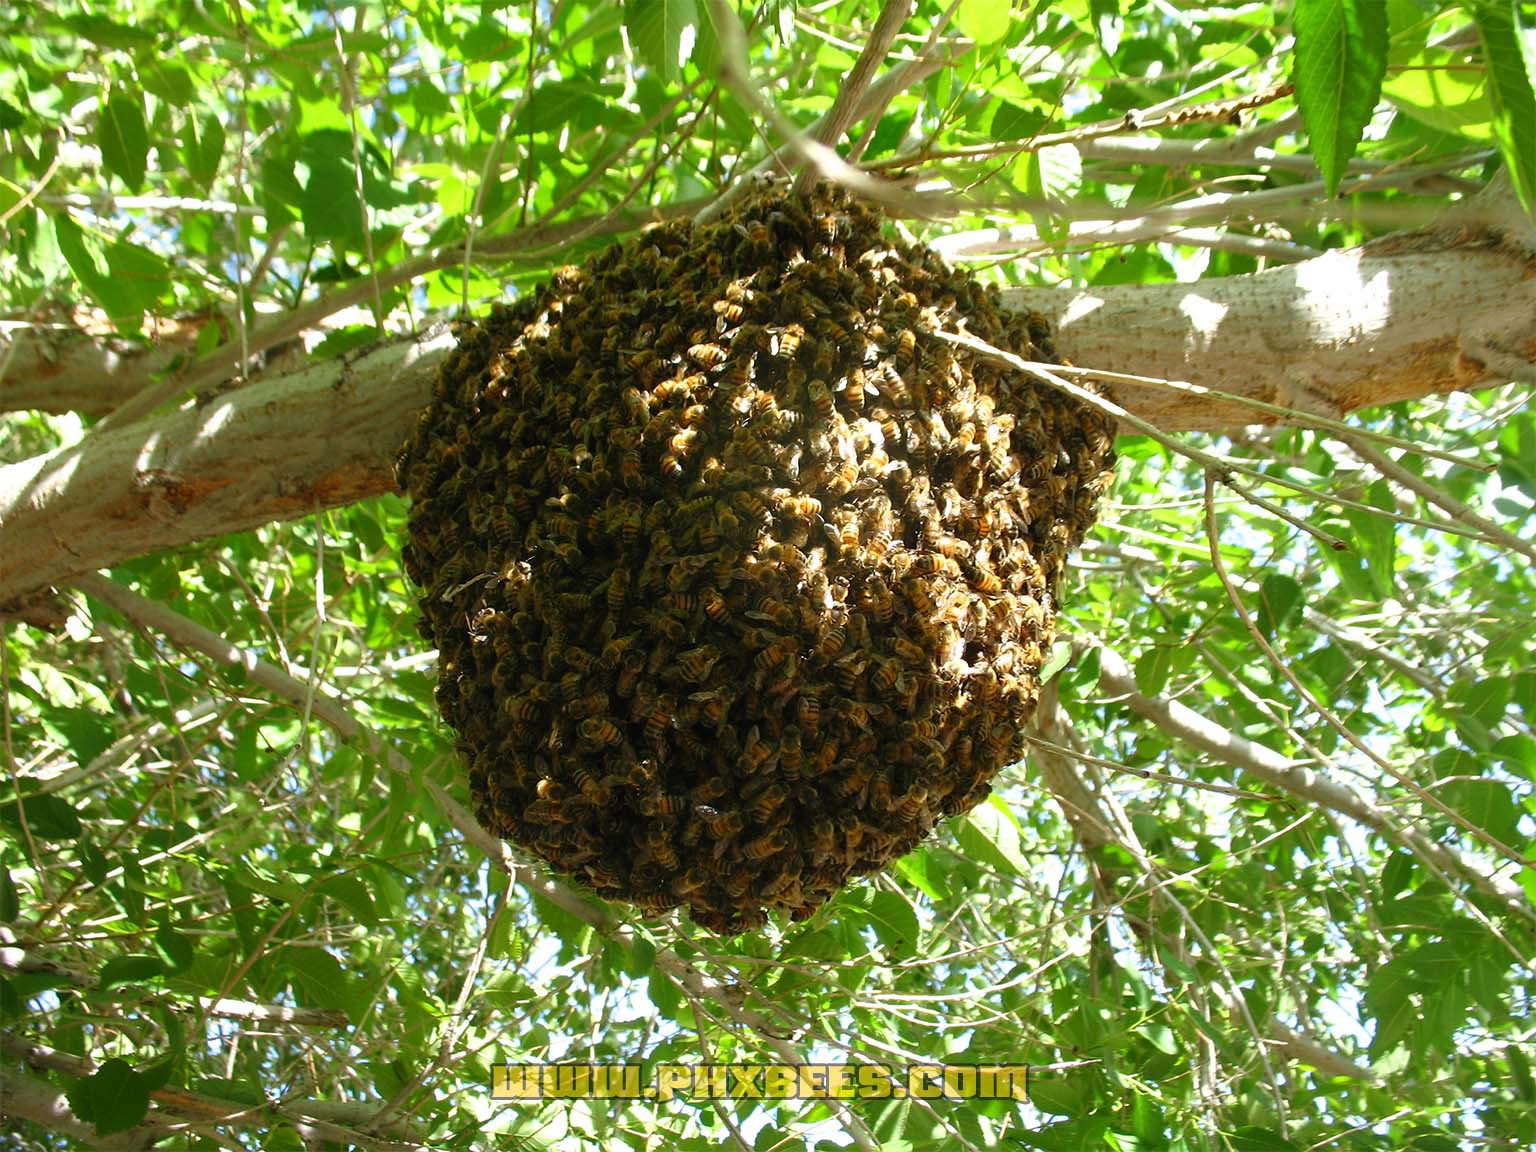 Small swarm on a branch